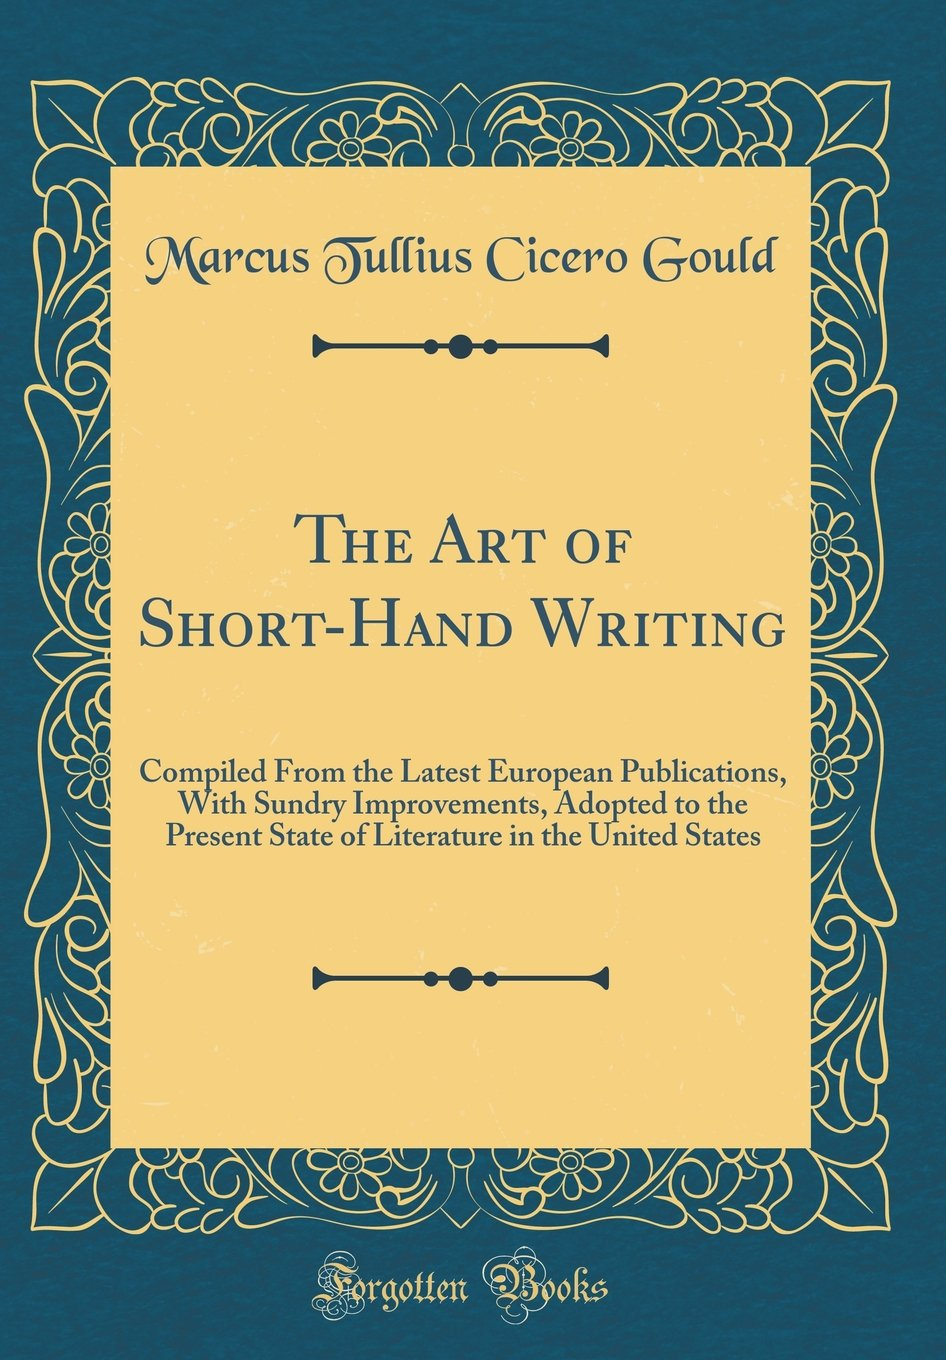 Download The Art of Short-Hand Writing: Compiled From the Latest European Publications, With Sundry Improvements, Adopted to the Present State of Literature in the United States (Classic Reprint) PDF